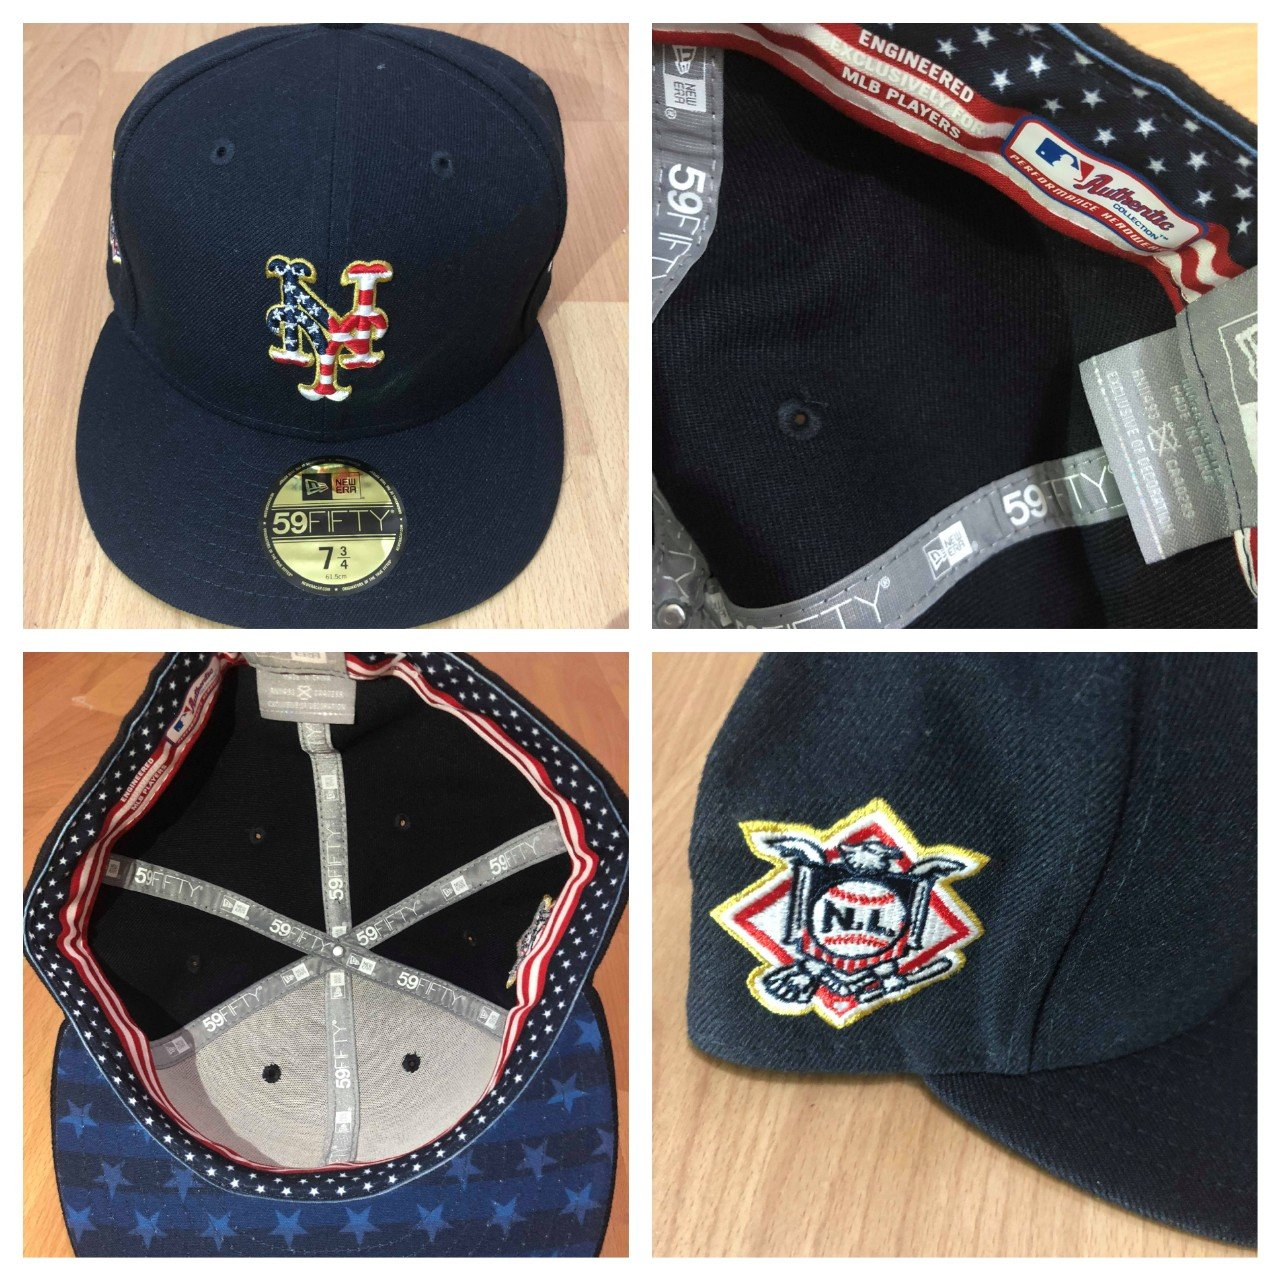 New era New York Mets July 4th Fitted cap Hat size 7 3 4 red - Depop a2ea0309d8f8